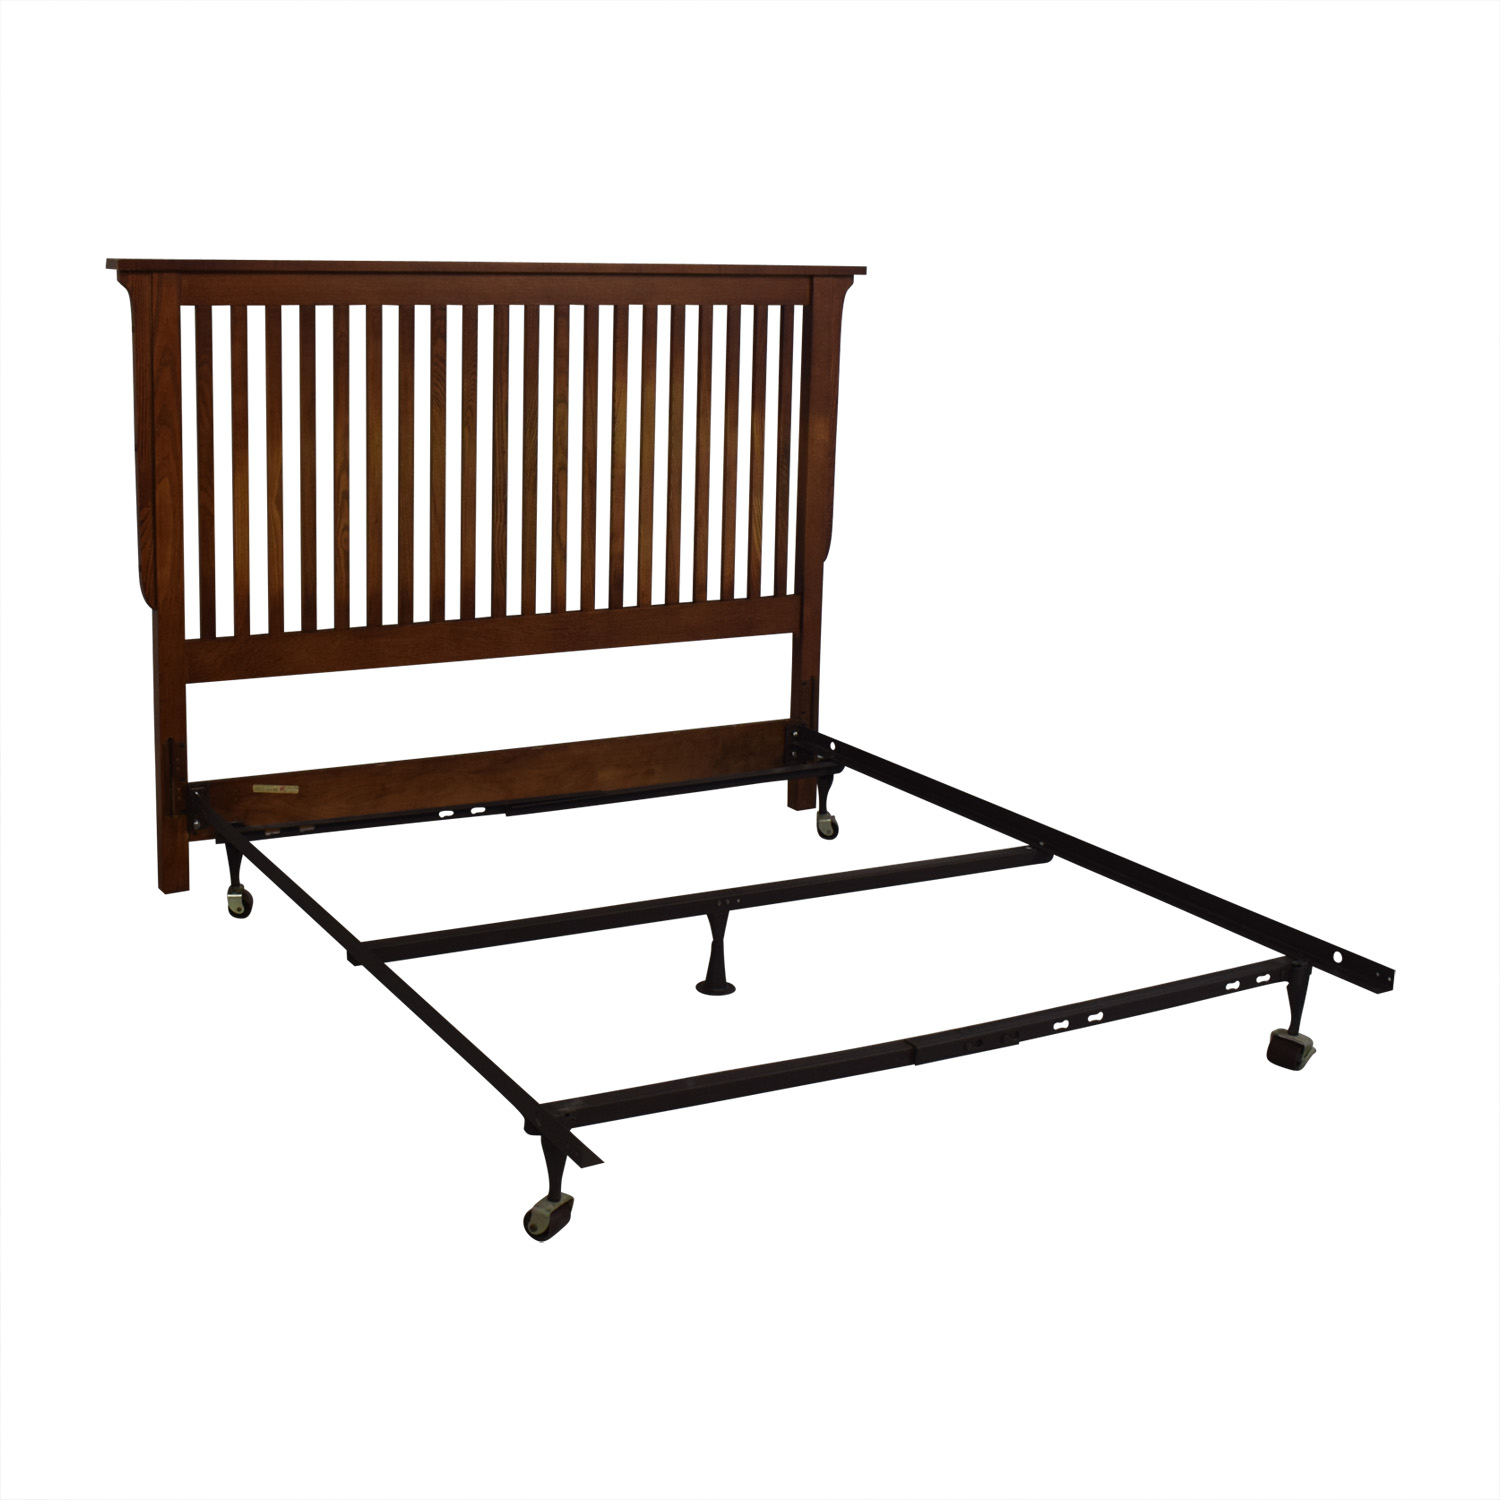 Bassett Furniture Mission Wood Headboard and Metal Base Full Bed Frame / Beds